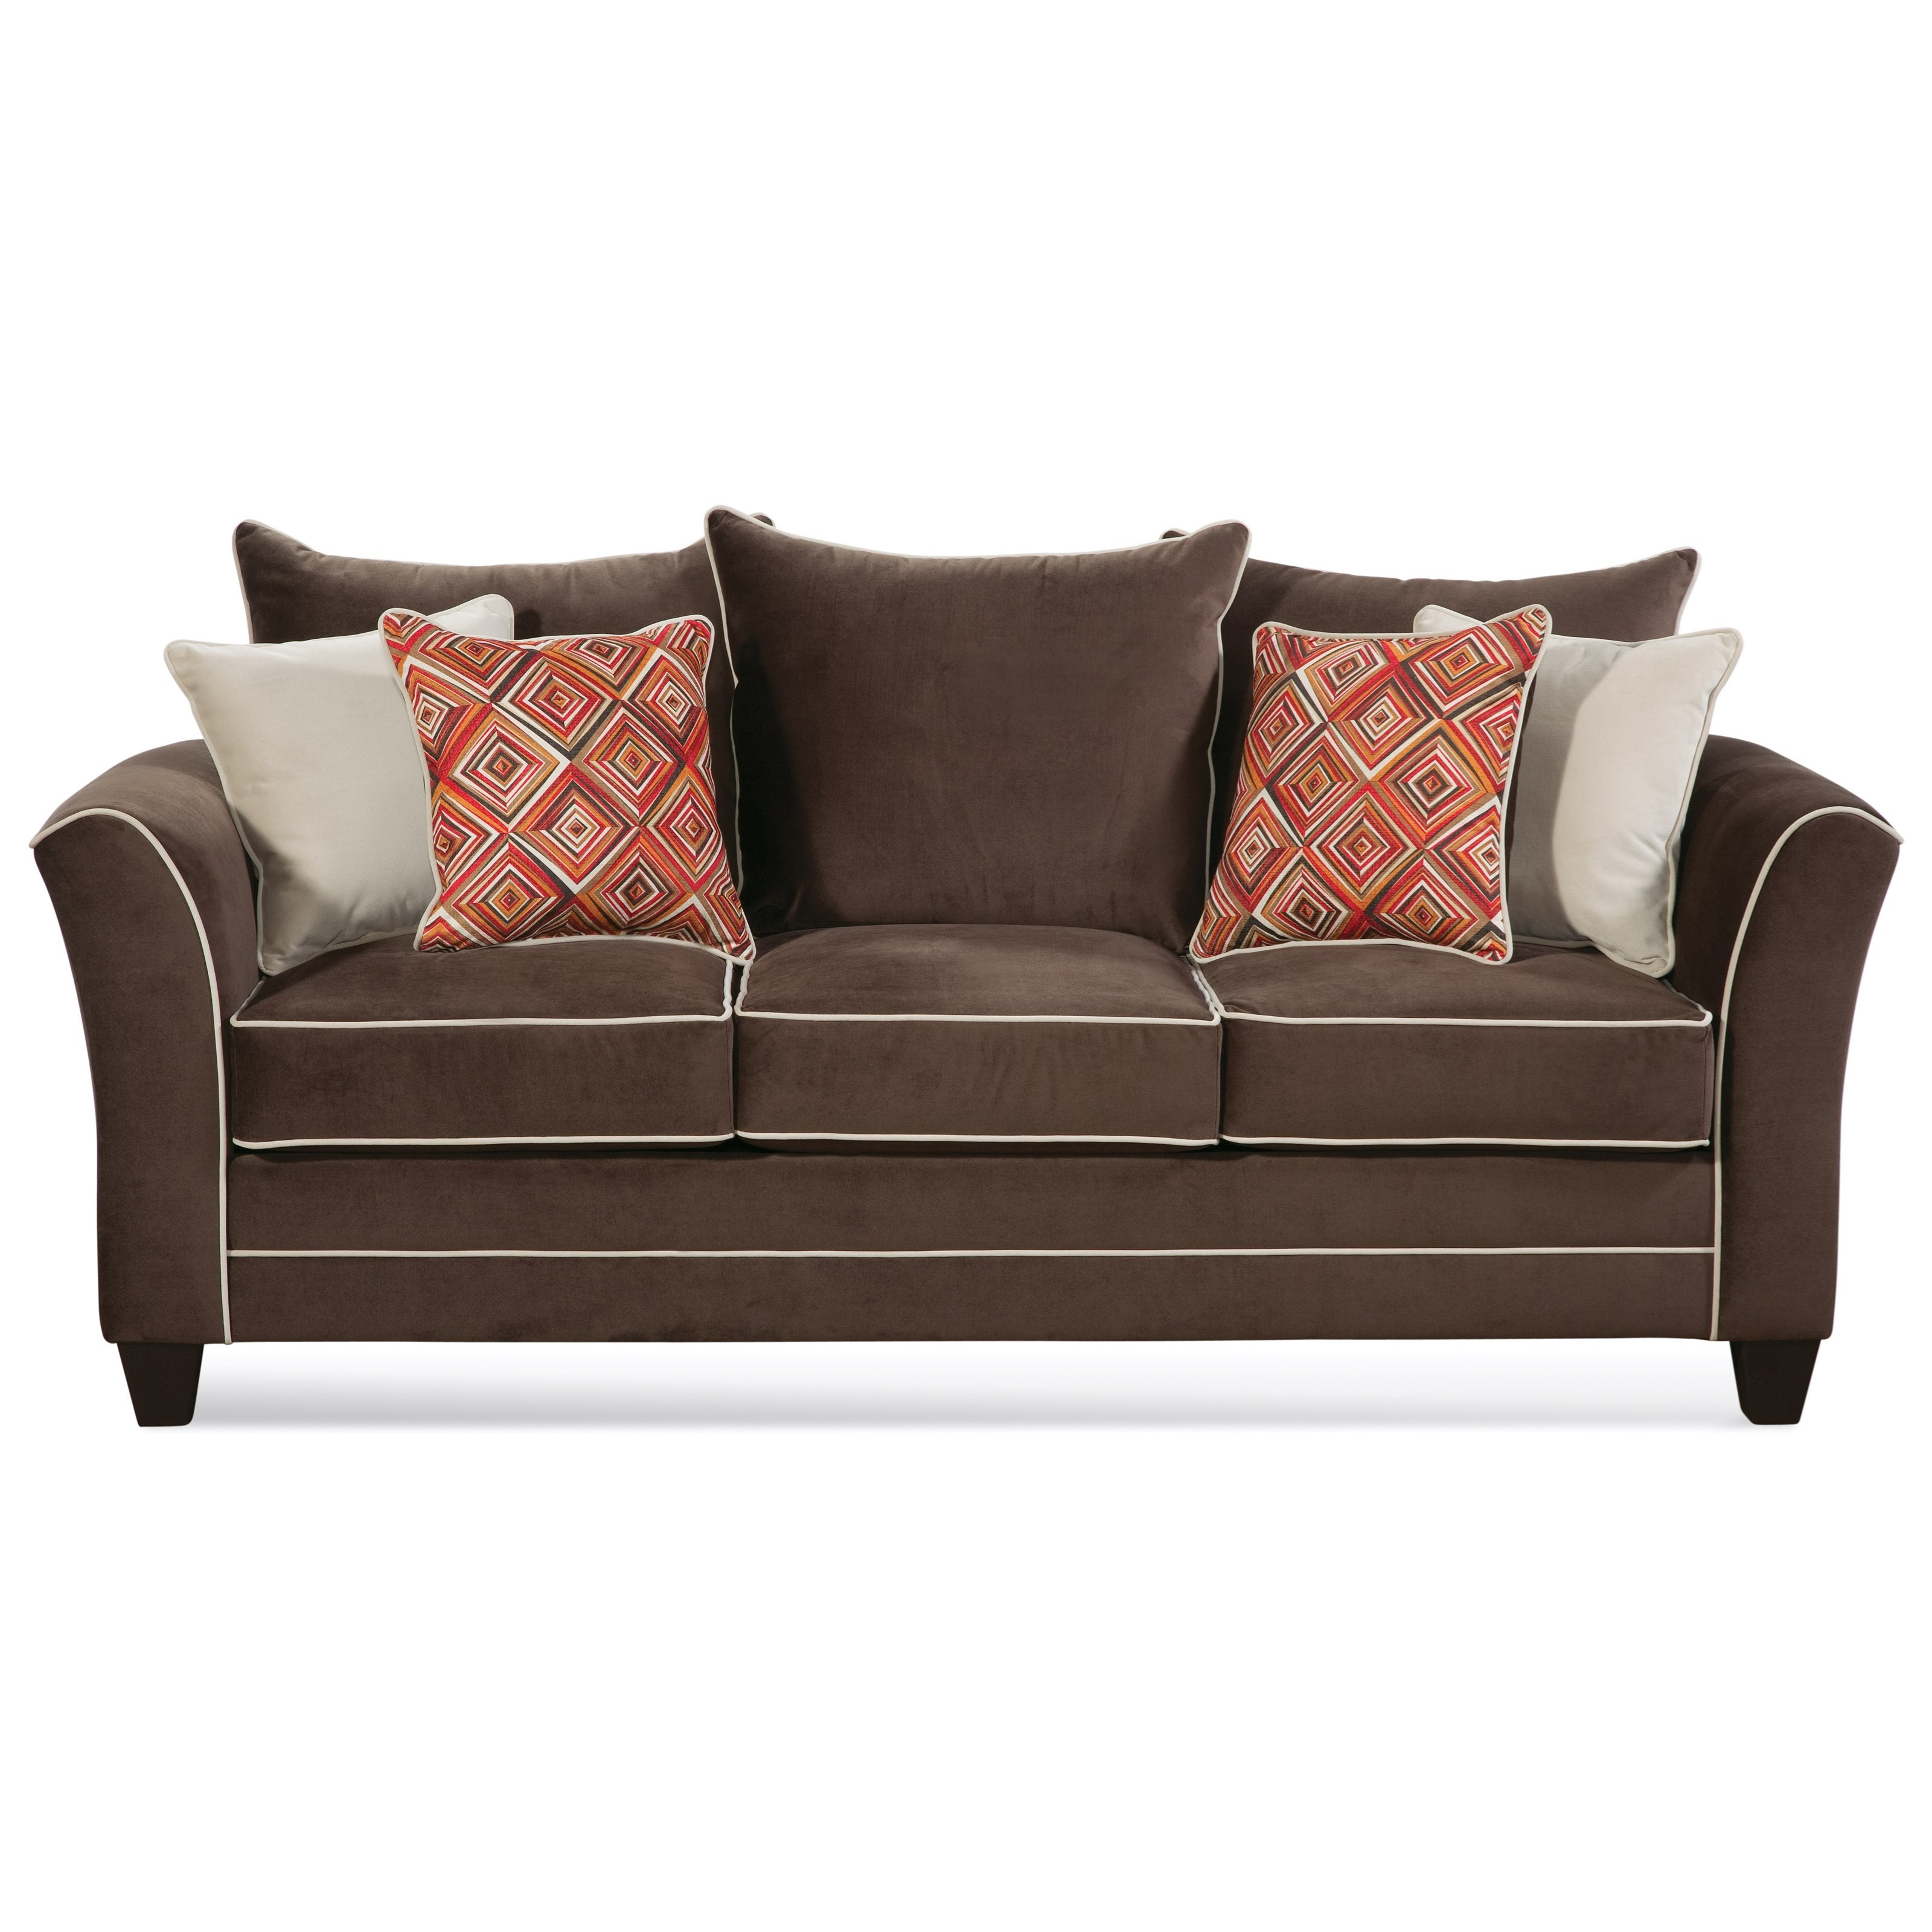 Sofa Welt Serta Upholstery By Hughes Furniture 2650 Transitional